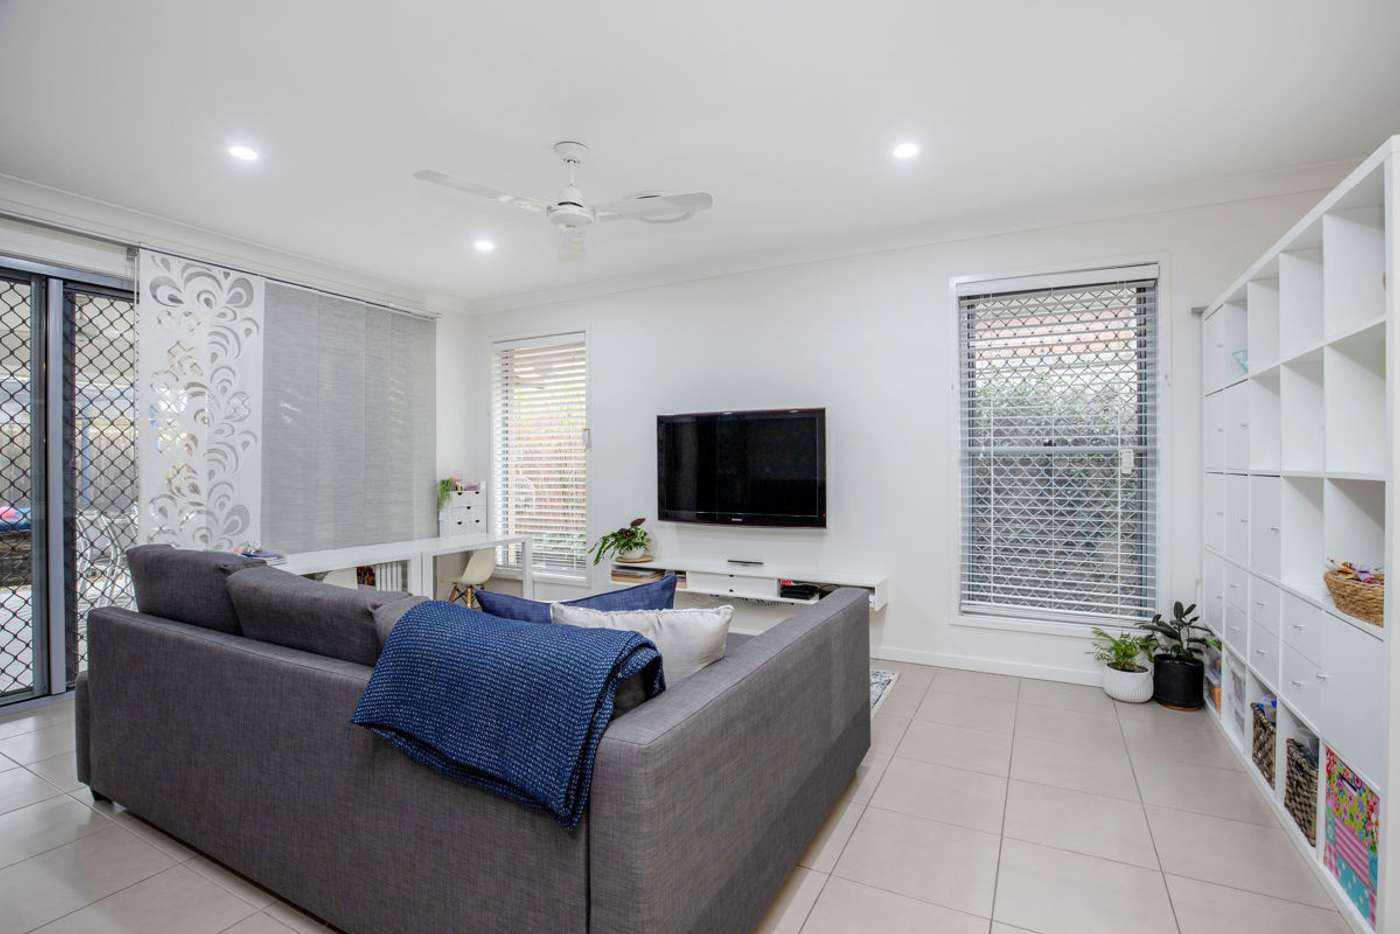 Sixth view of Homely house listing, 96 Brookside Cct, Ormeau QLD 4208